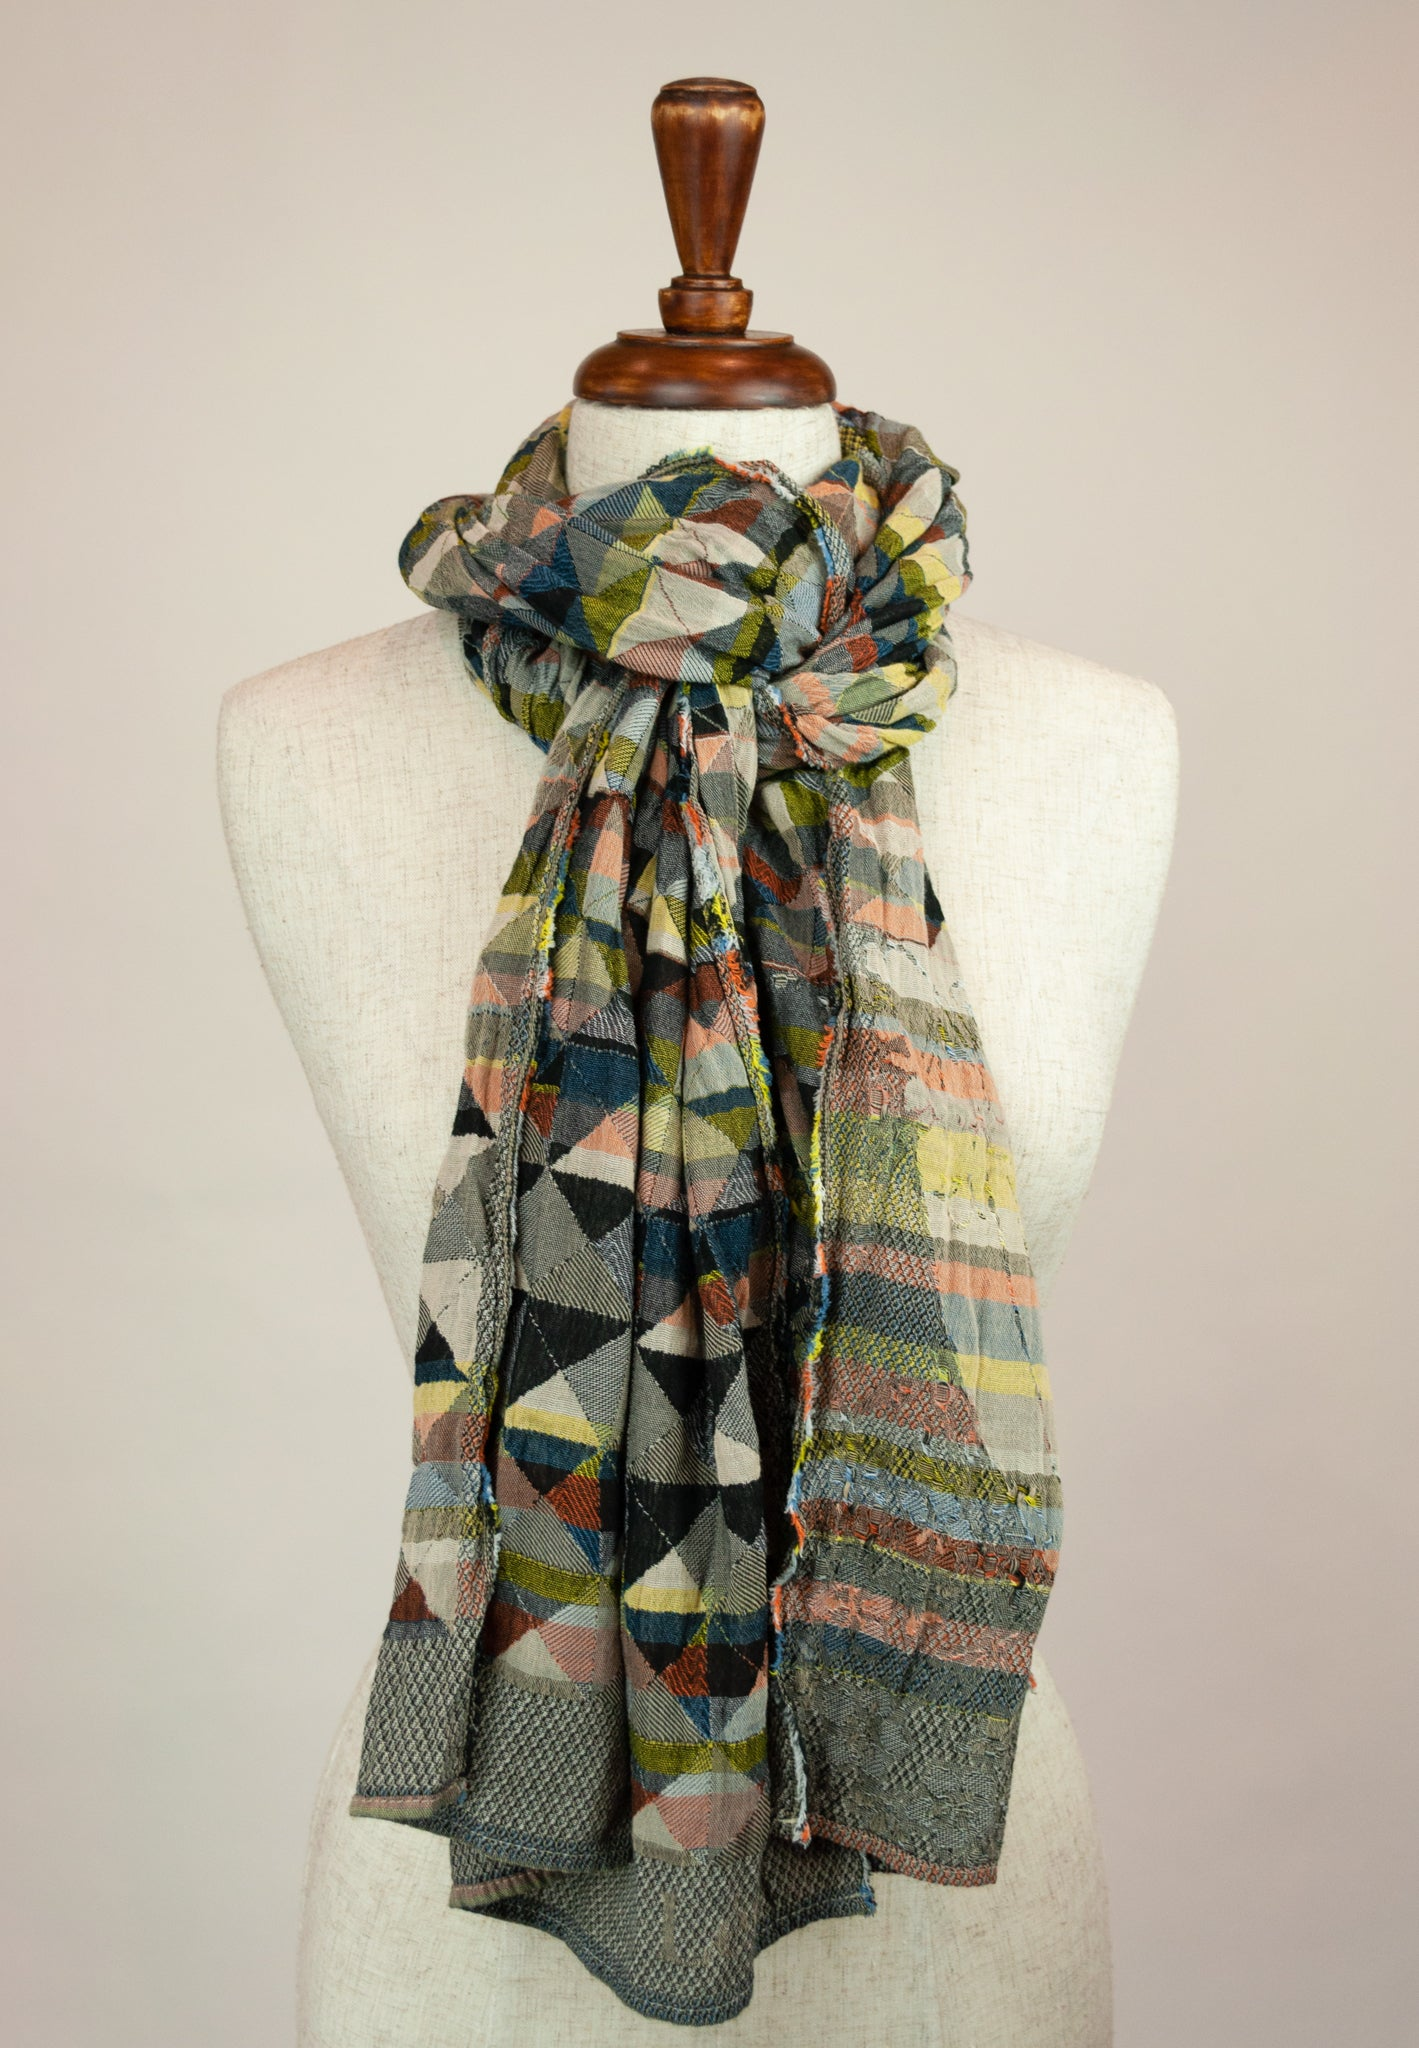 Létol French organic cotton scarf with a geometric Missoni inspired design in shades of red, green, gold, blue and black.